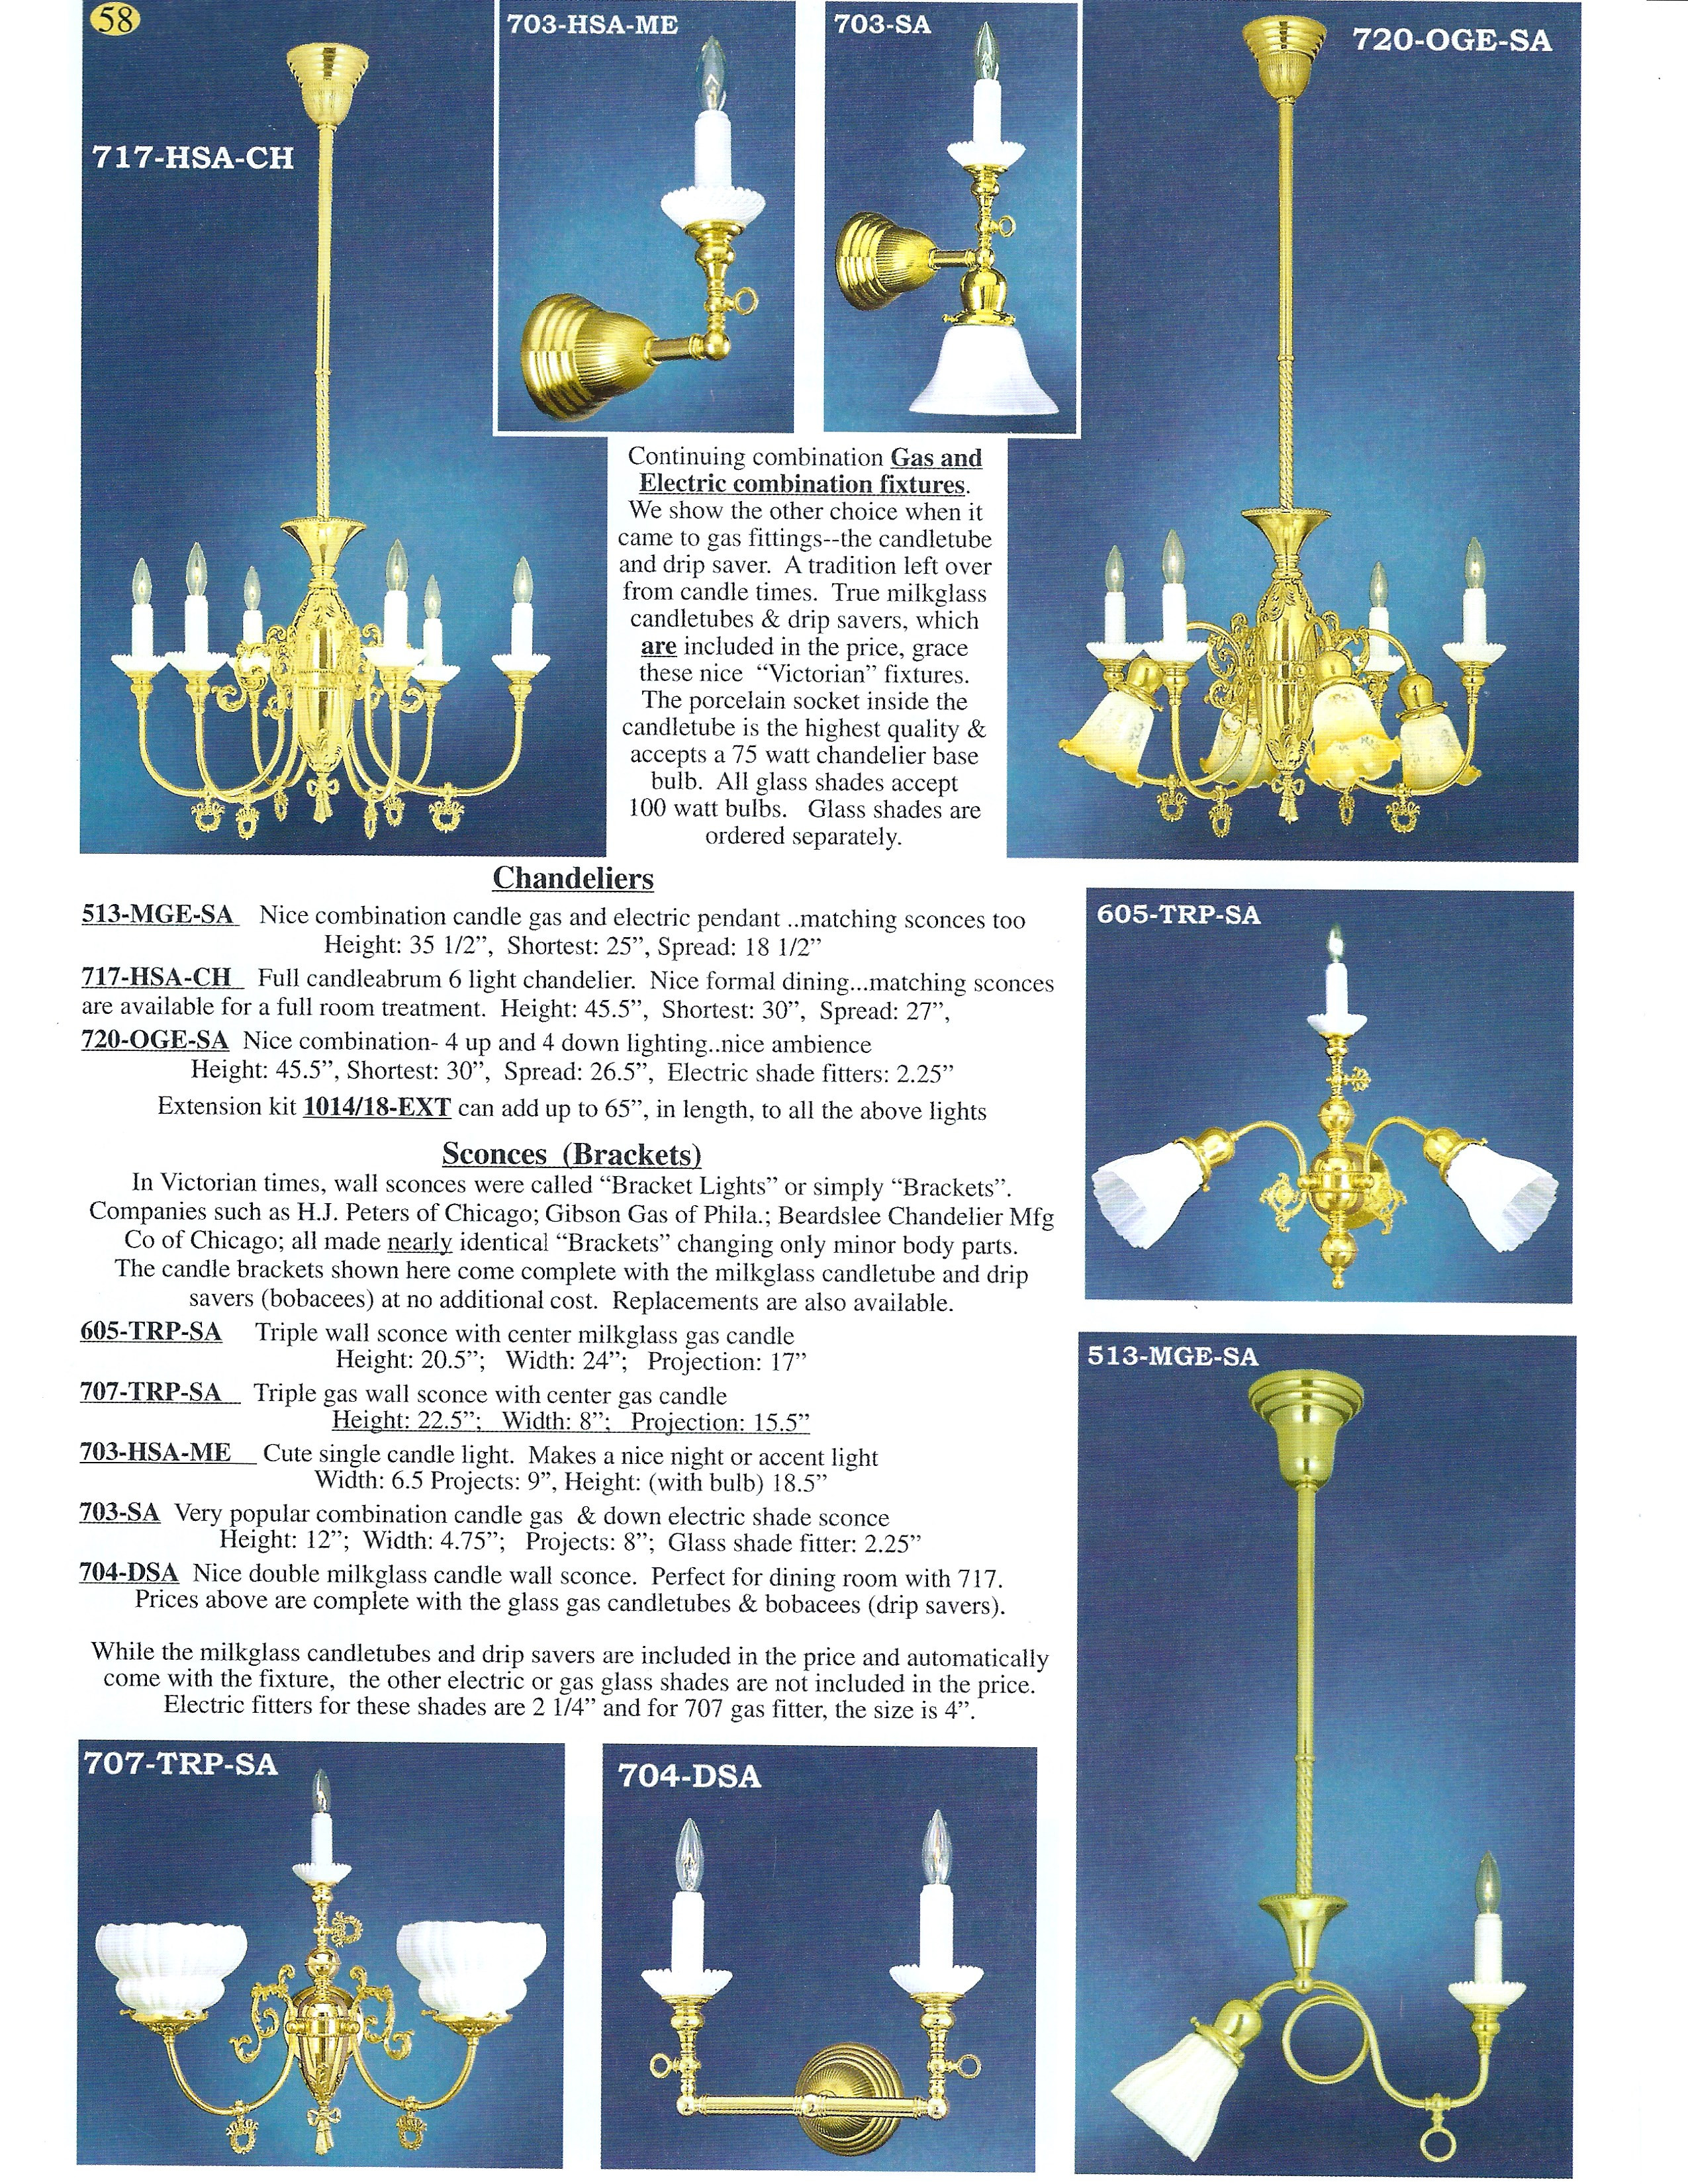 Catalog page 84